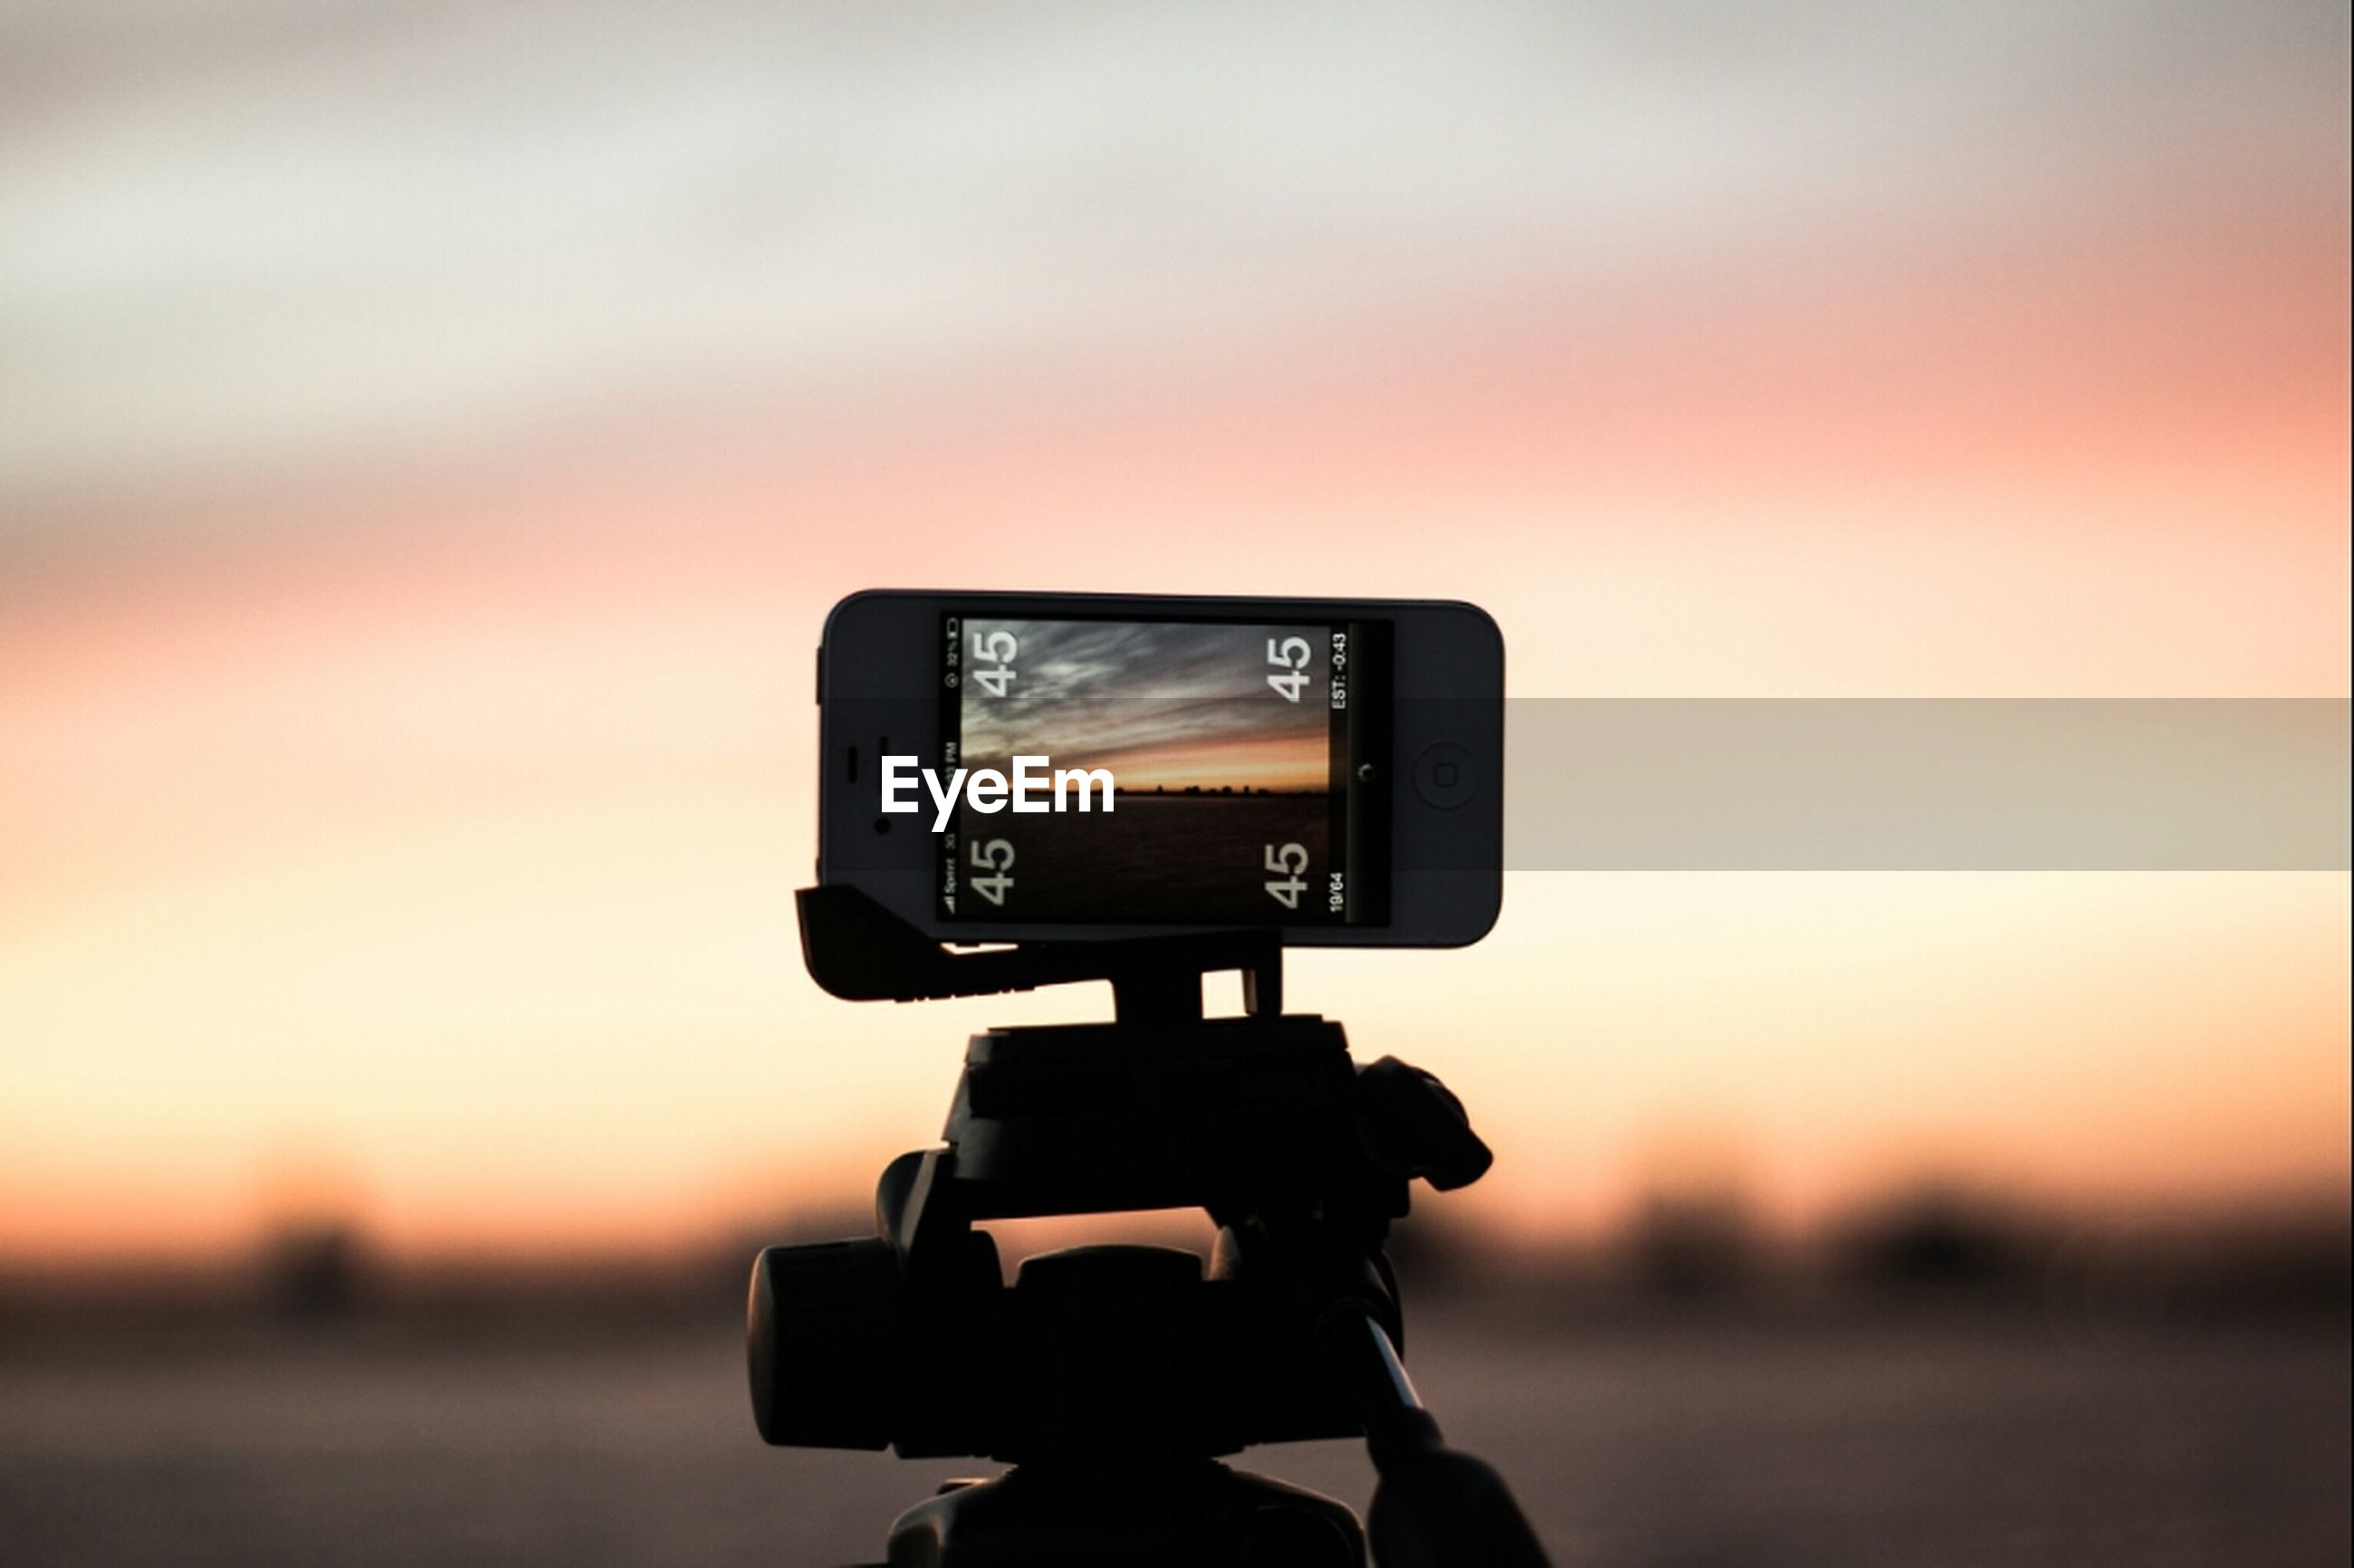 sunset, technology, photography themes, focus on foreground, silhouette, camera - photographic equipment, photographing, wireless technology, close-up, orange color, sky, communication, digital camera, holding, smart phone, connection, one person, nature, tranquility, mobile phone